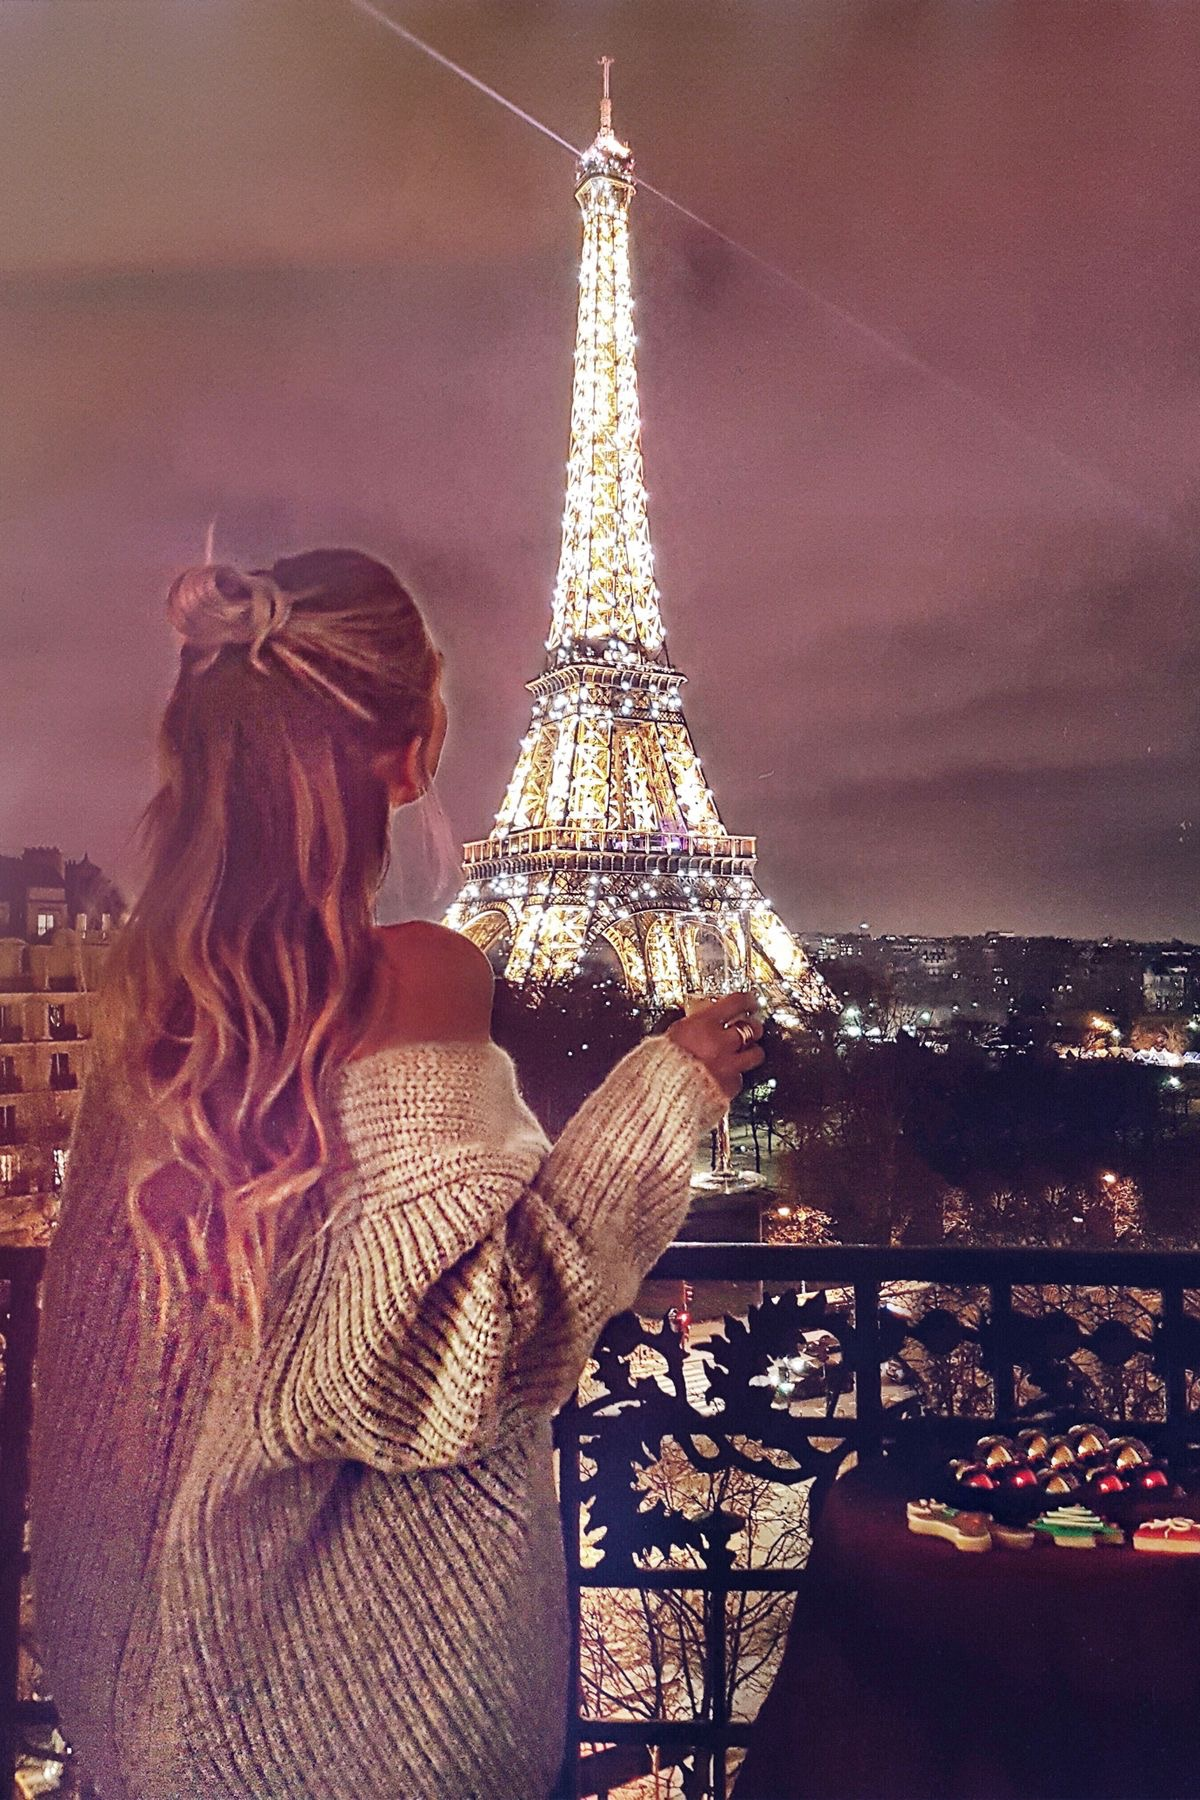 aesthetic, cute, france, girly, lights